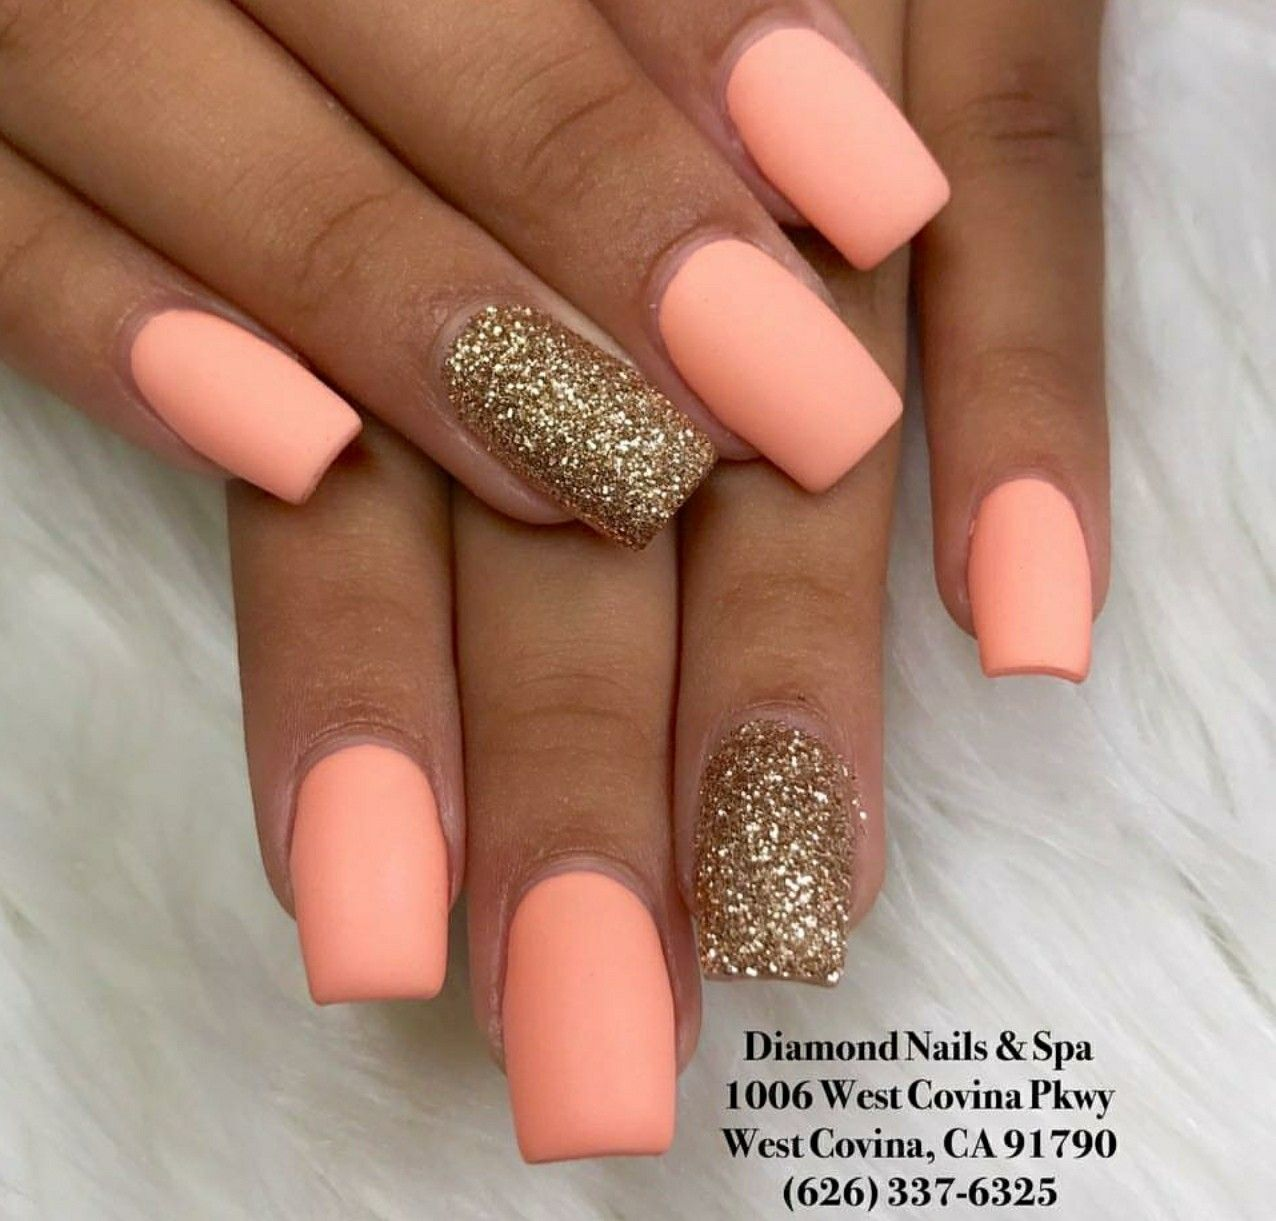 Short Square Nails Matte Nails Gold Glitter Nails Acrylic Nails Summer Nails Gold Glitter Nails Square Acrylic Nails Square Nails